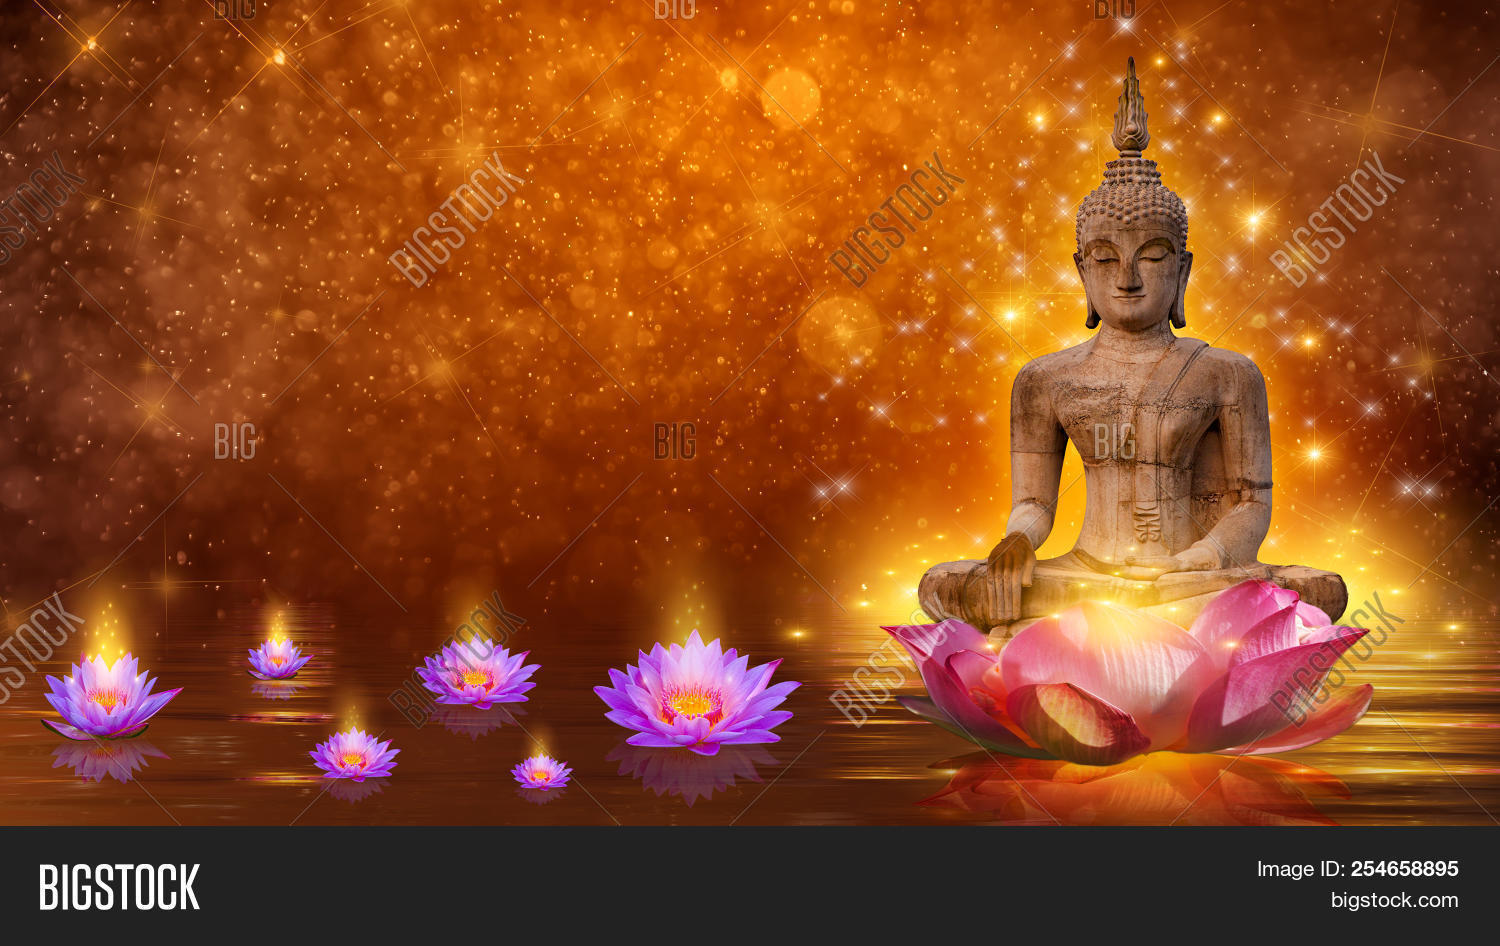 Buddha statue water image photo free trial bigstock buddha statue water lotus buddha standing on lotus flower on orange background izmirmasajfo